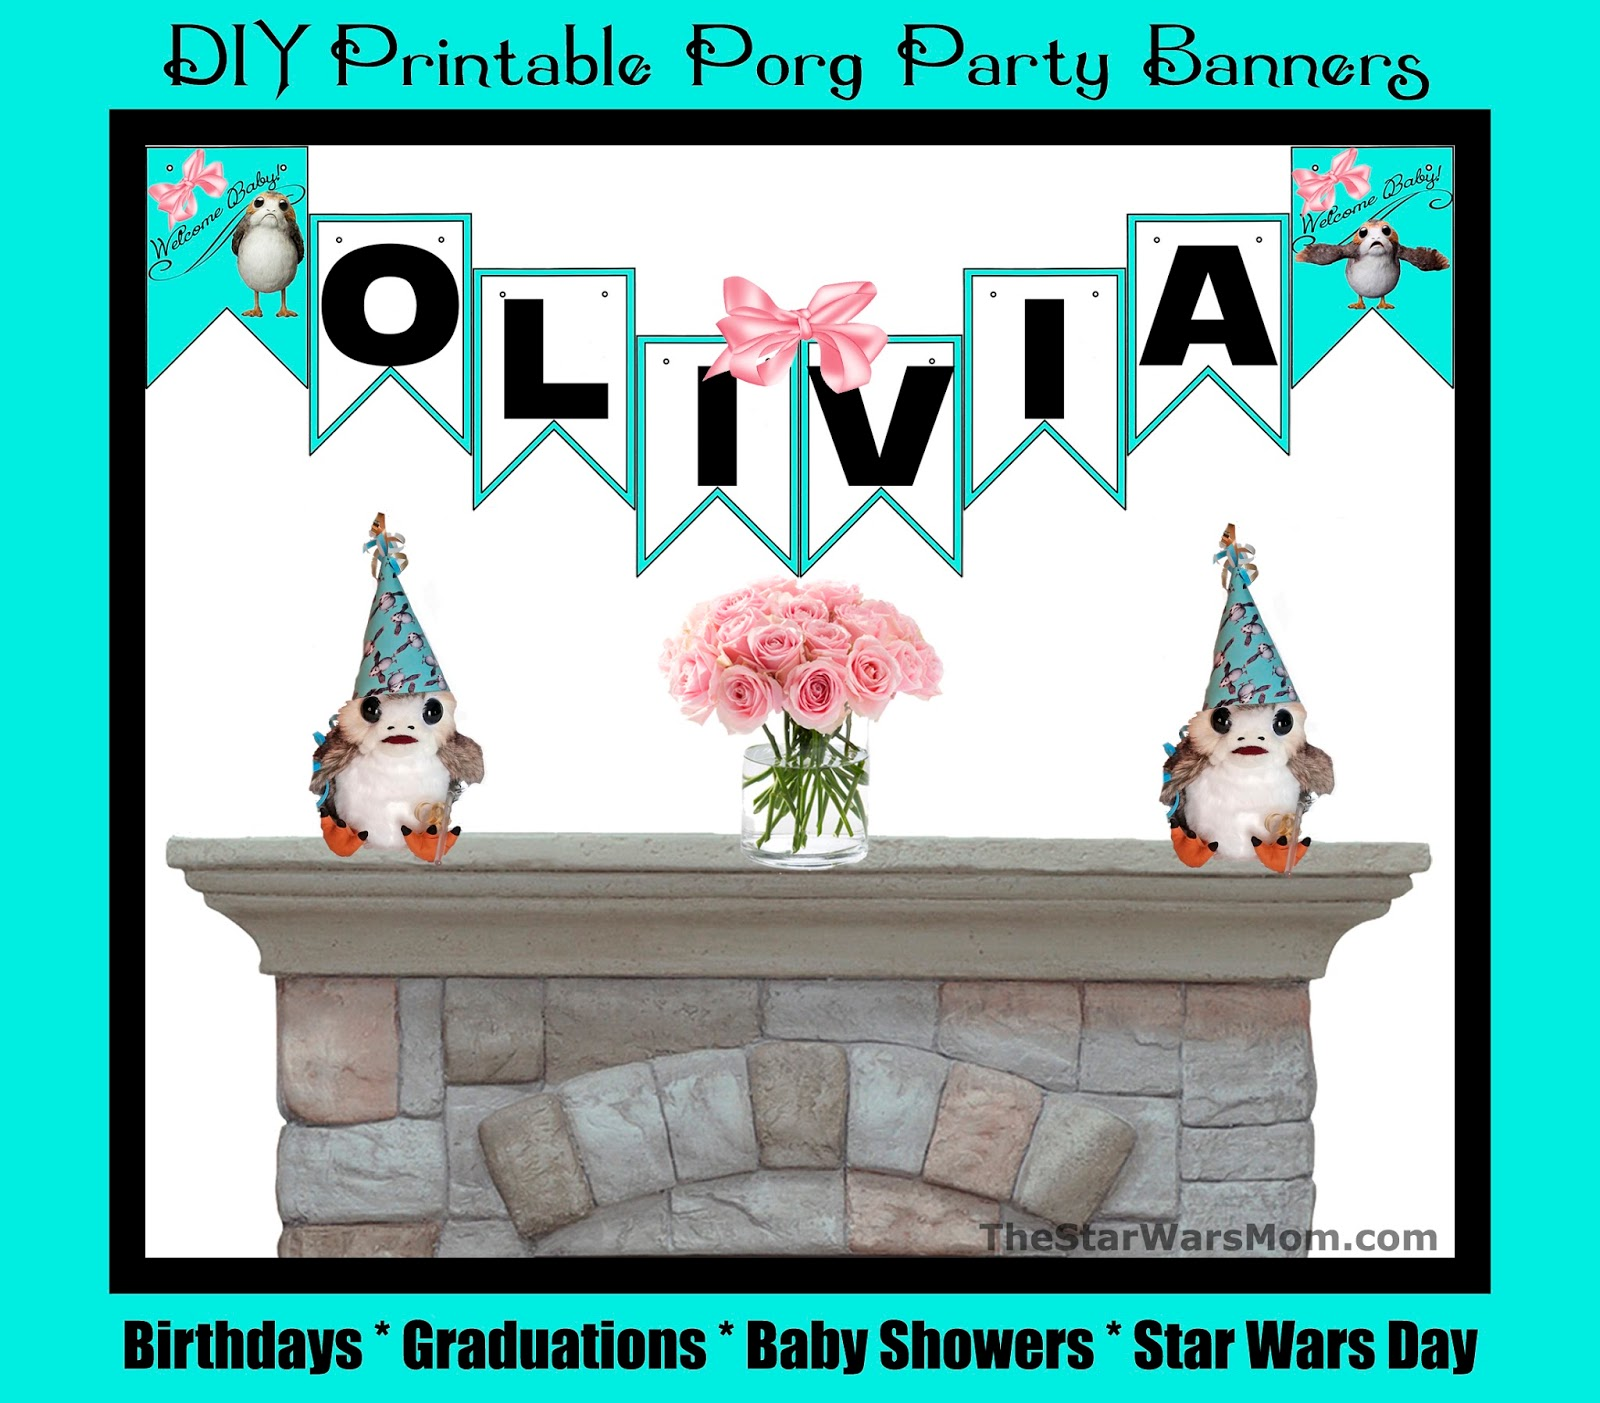 photo relating to Free Printable Birthday Banners Personalized identify Tailored Totally free Printable Porg Bash Banners For Any